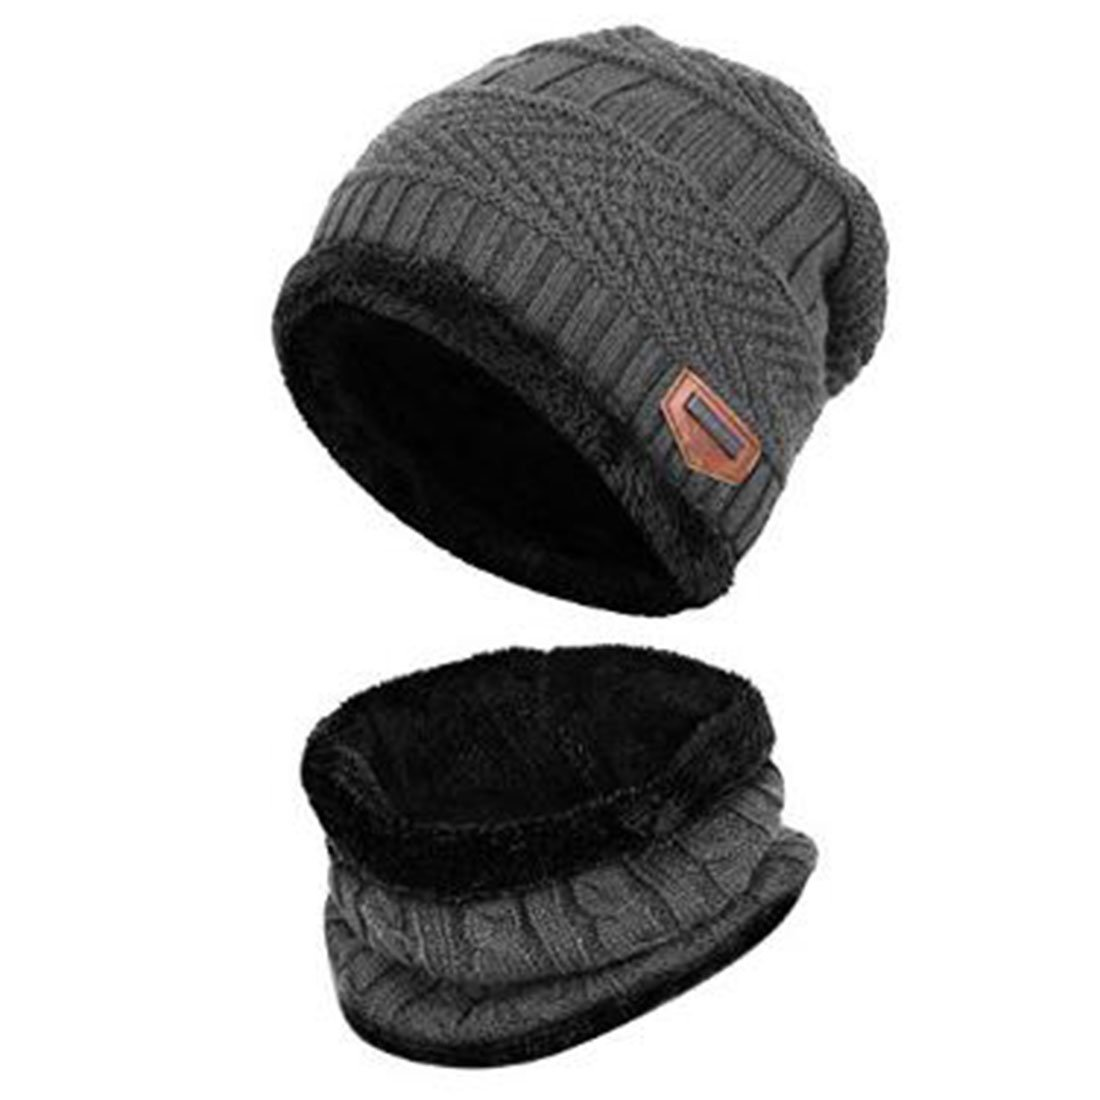 2Pieces Kids Knitted Winter Hat and Scarf Set For Boy Girls, Beanie Skull Cap Beanie Skull Cap (Black)